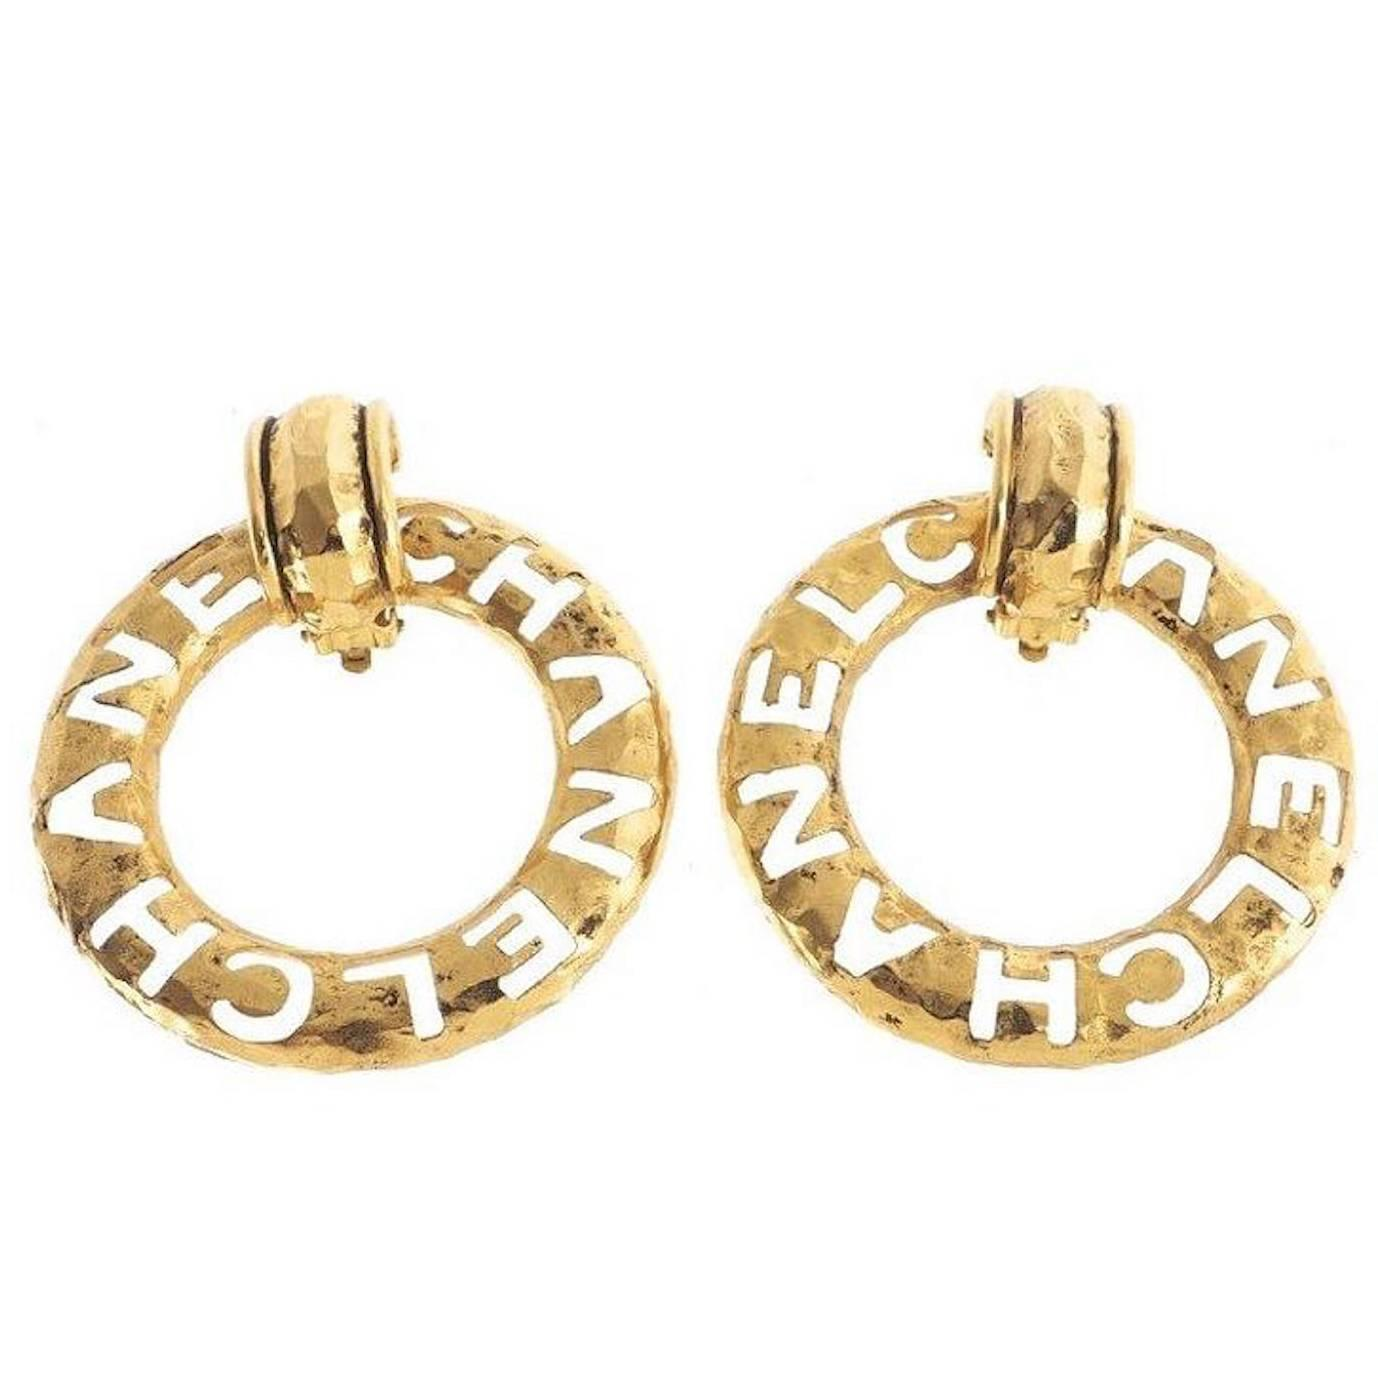 Chanel Vintage Oversize Large Inscribed Logo 2 In 1 Hoop Earrings